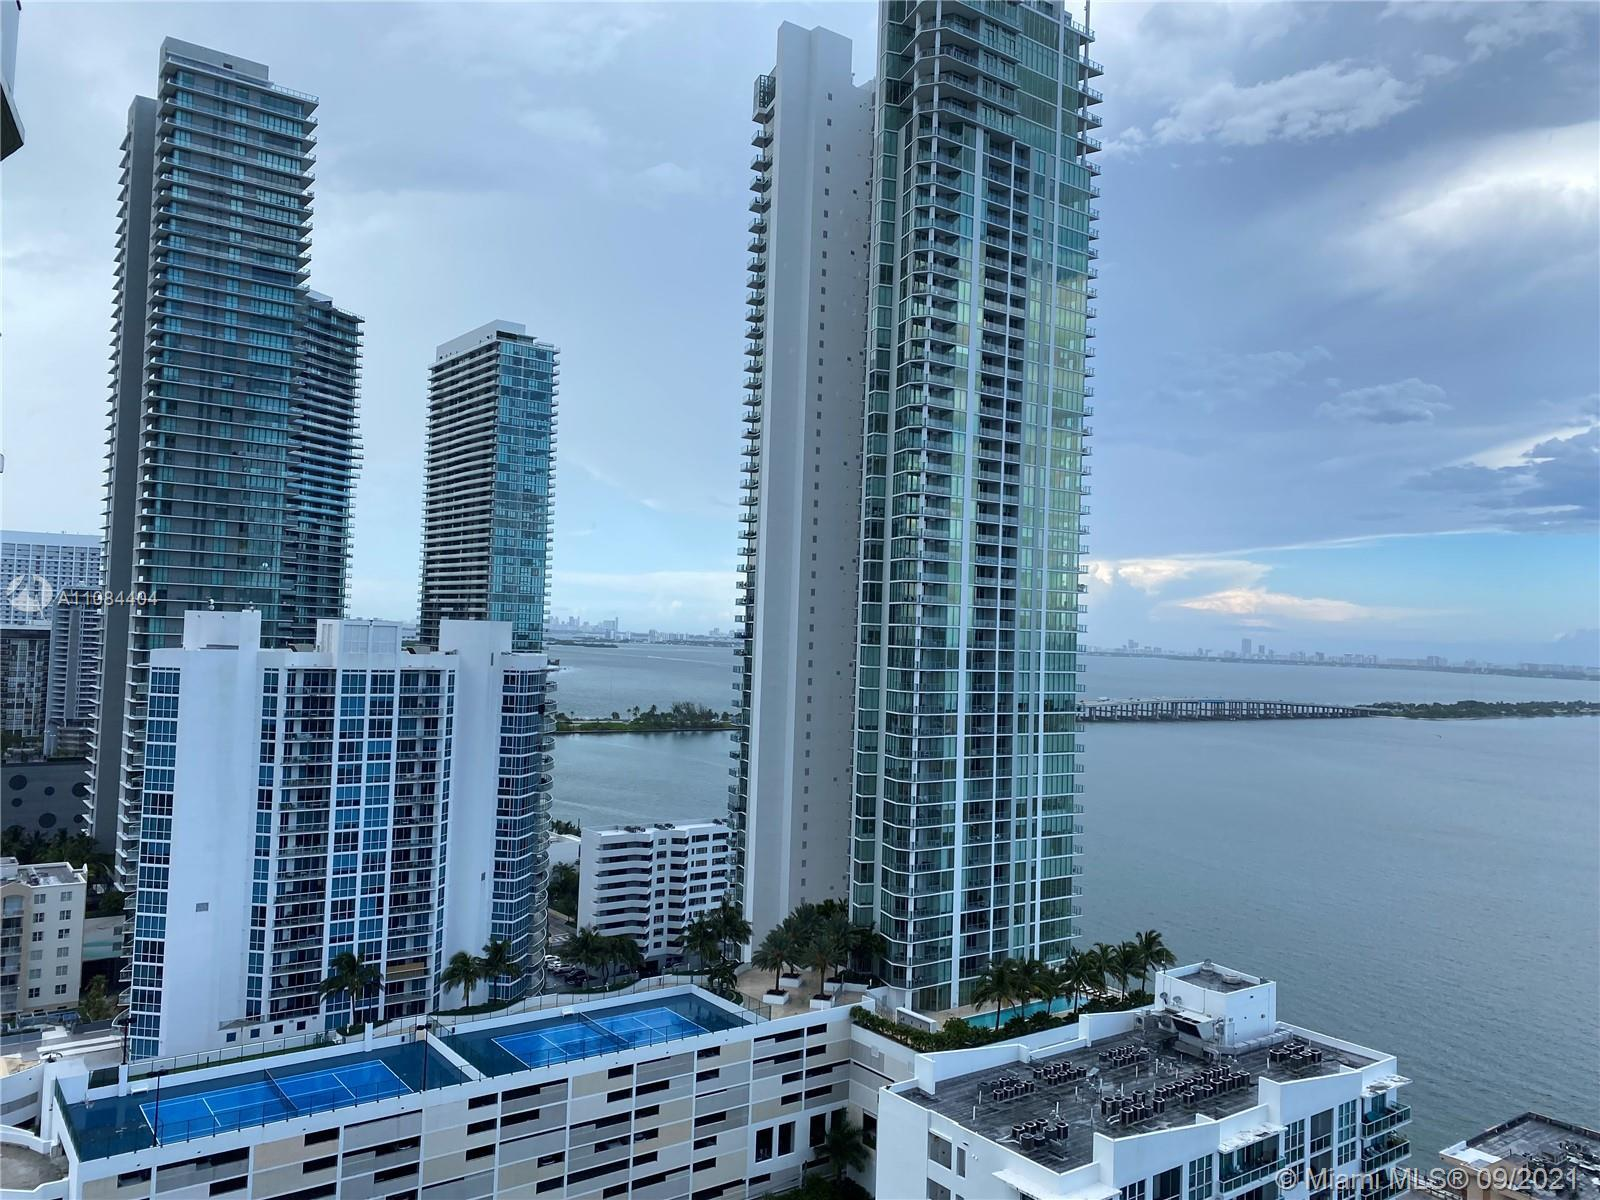 Icon Bay is a residential high-rise in the Edgewater neighborhood of Miami, Florida, containing abou